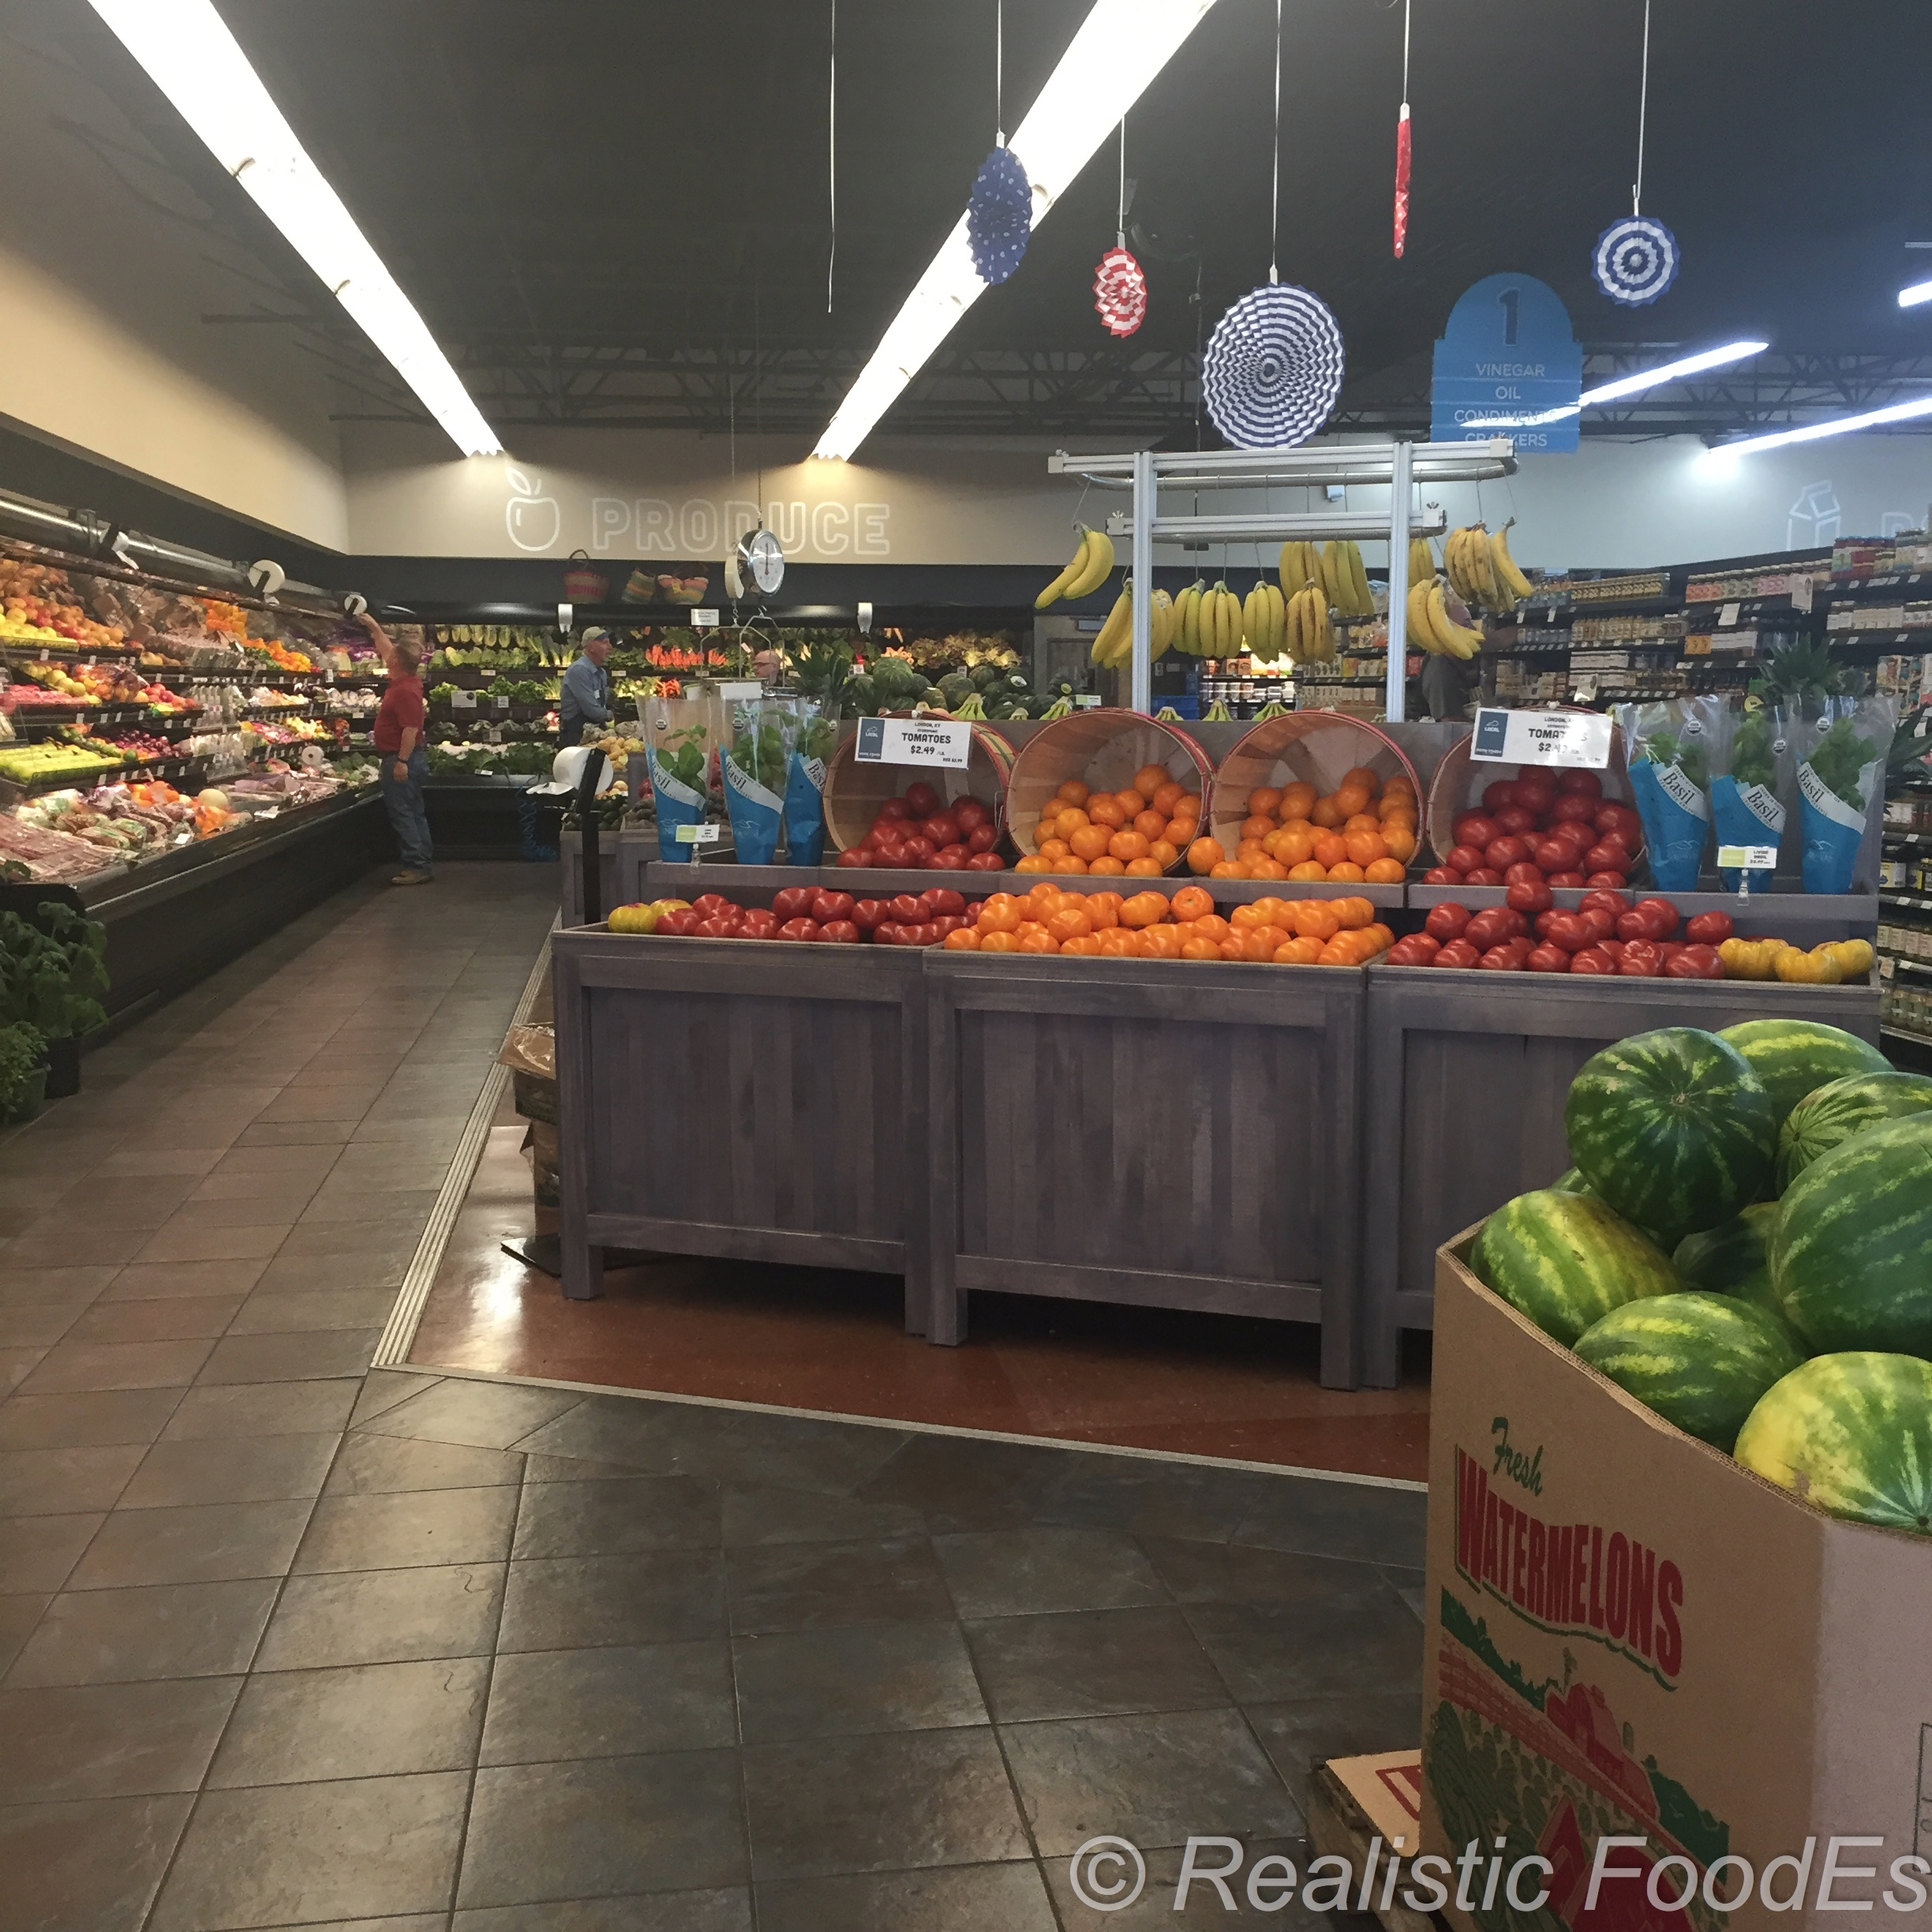 I always enter at the Produce section -- Ready to Perimeter shop!